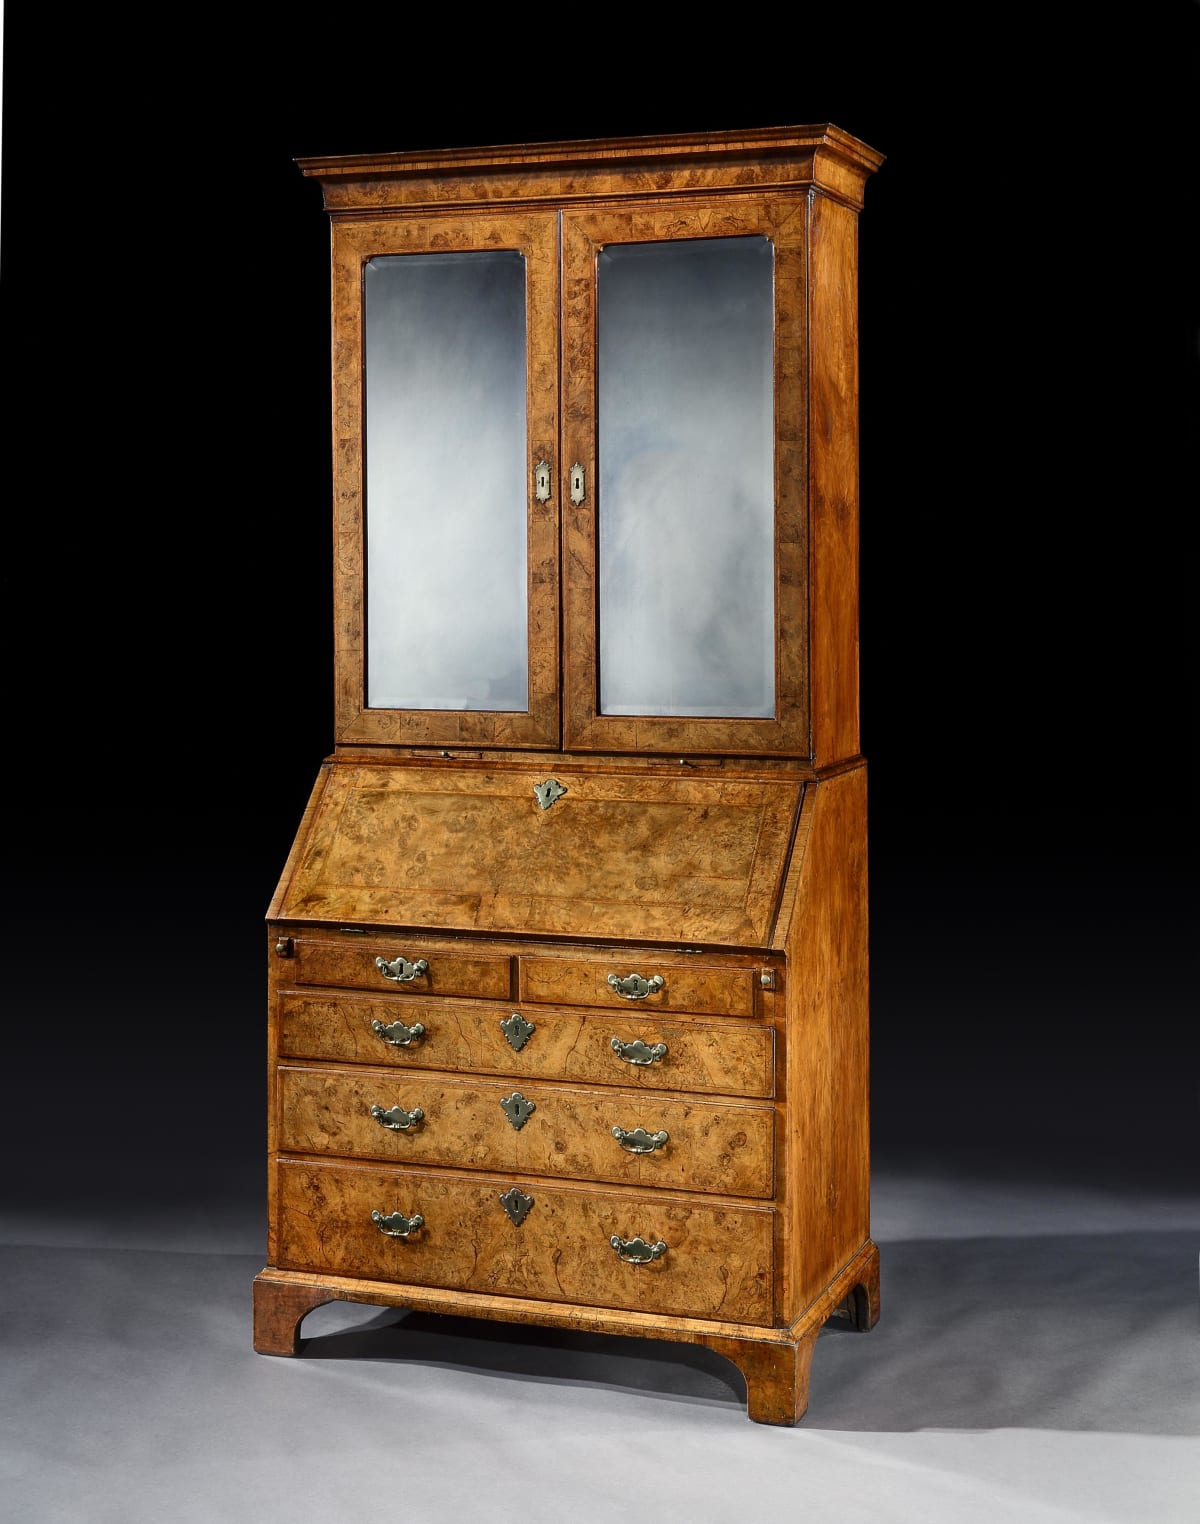 A GEORGE I WALNUT BUREAU BOOKCASE, English, circa 1720